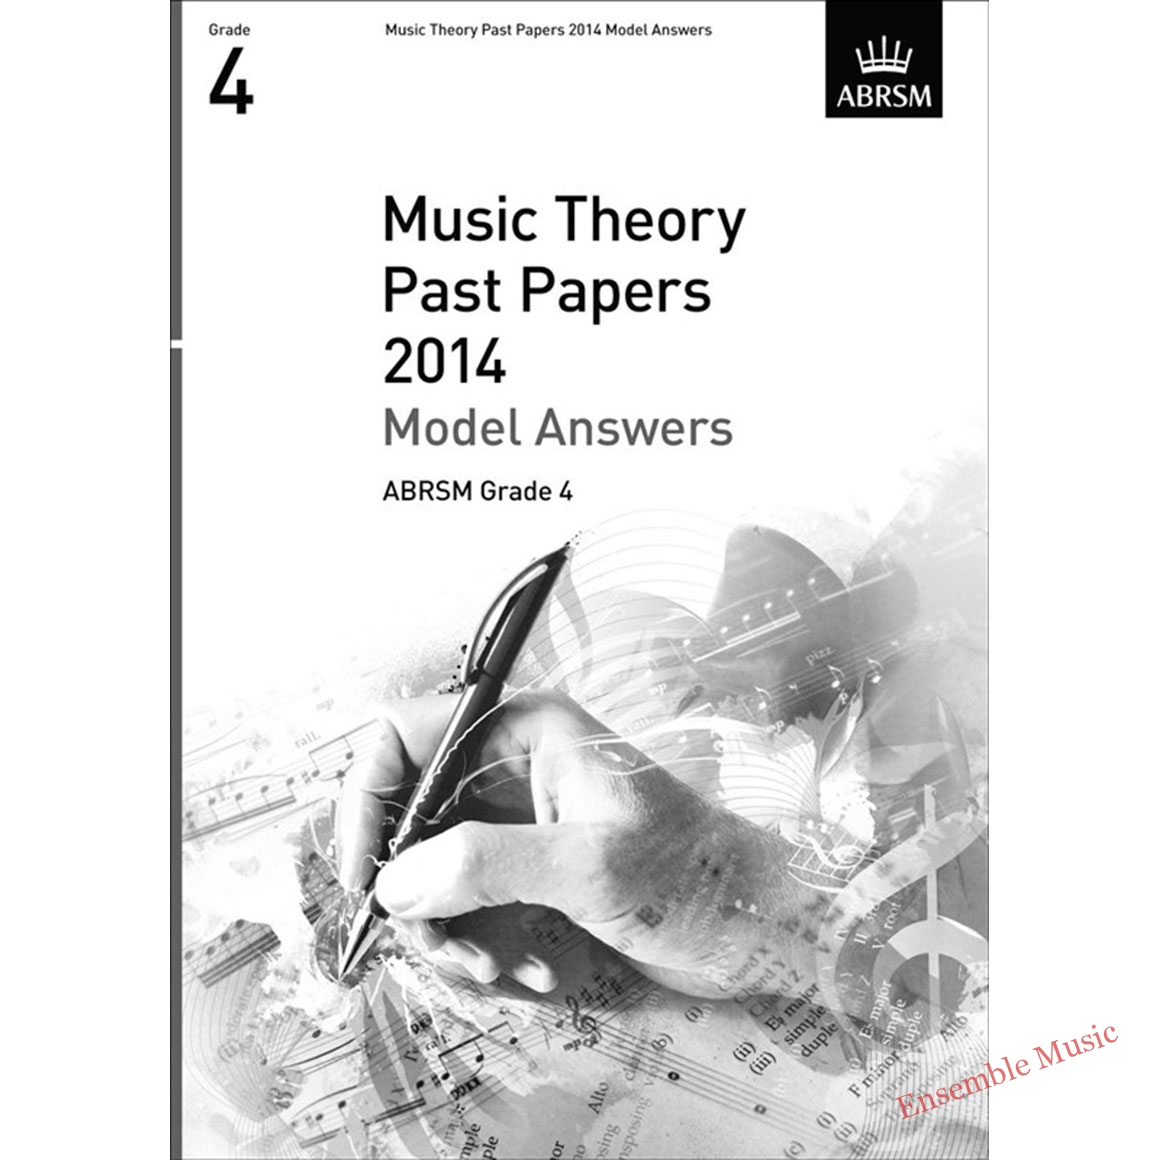 Music Theory Past Papers 2014 Model Answers Gr 4